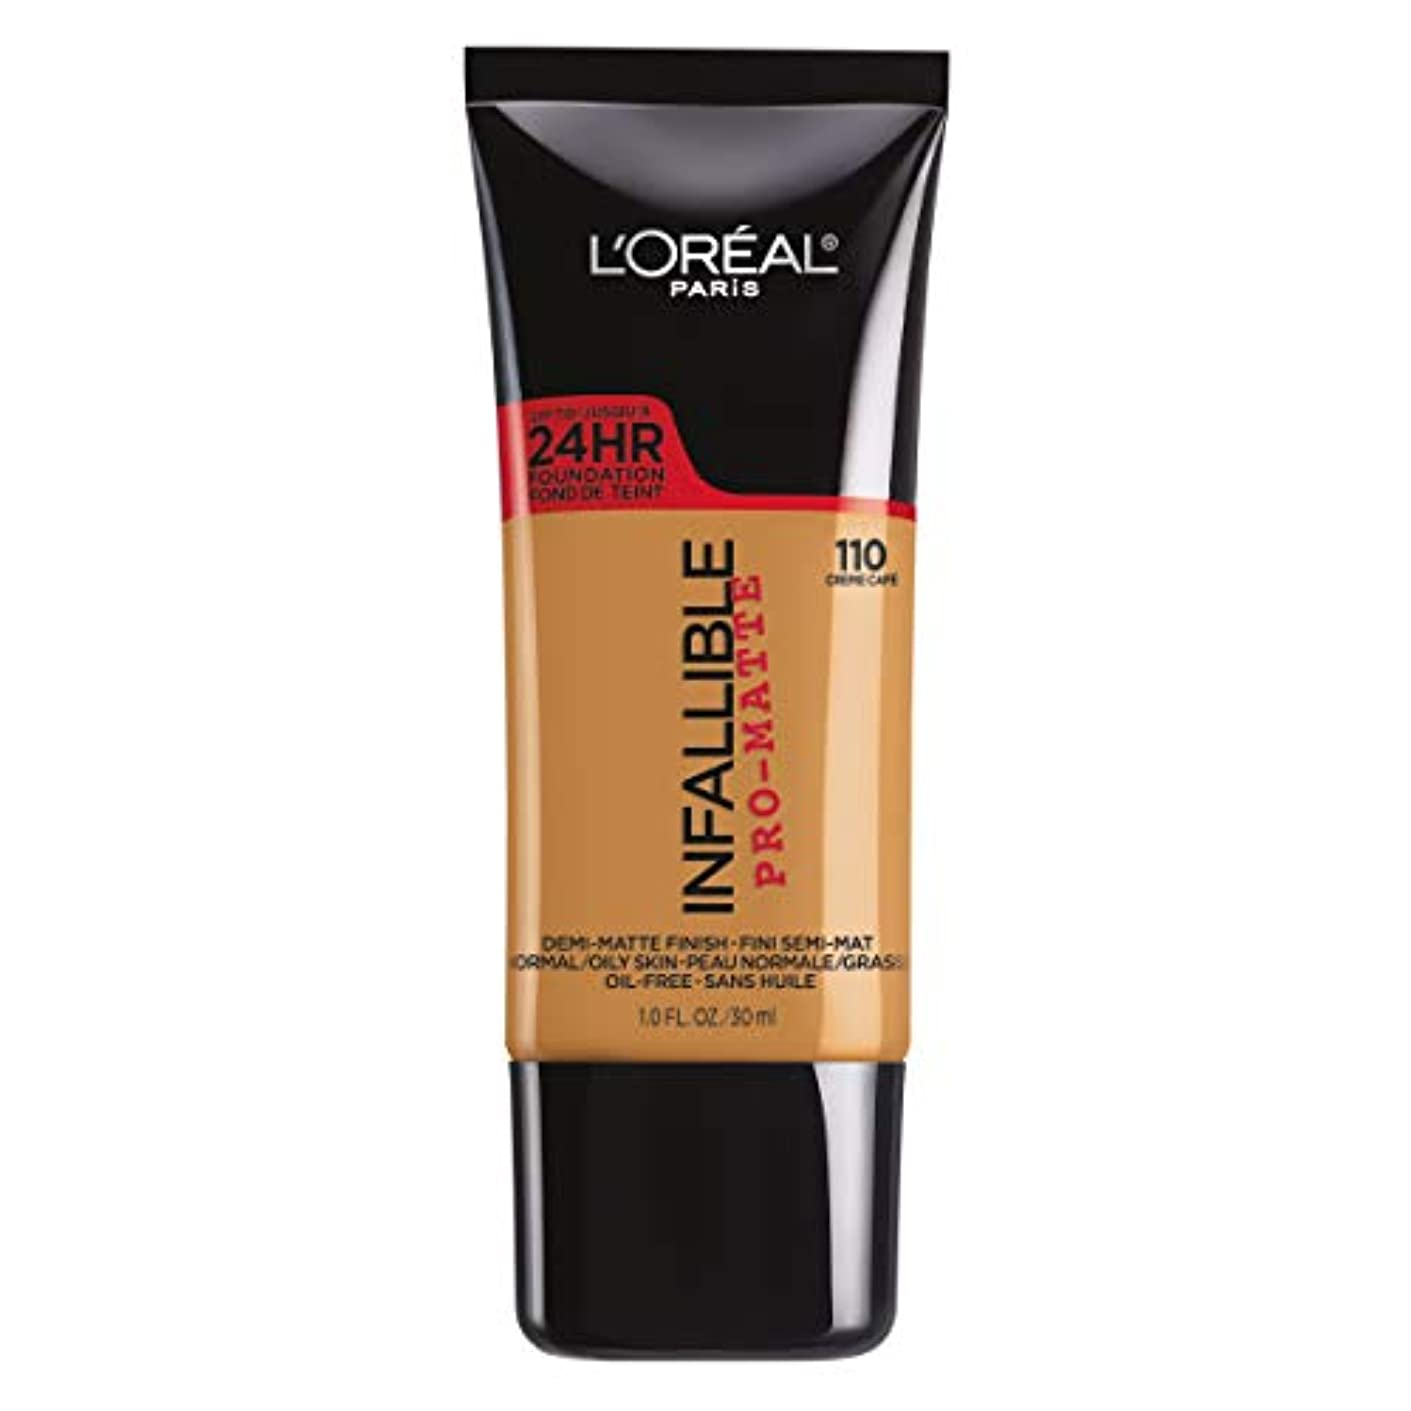 スキニー気性中性L'Oreal Paris Infallible Pro-Matte Foundation Makeup, 110 Crème Café, 1 fl. oz[並行輸入品]